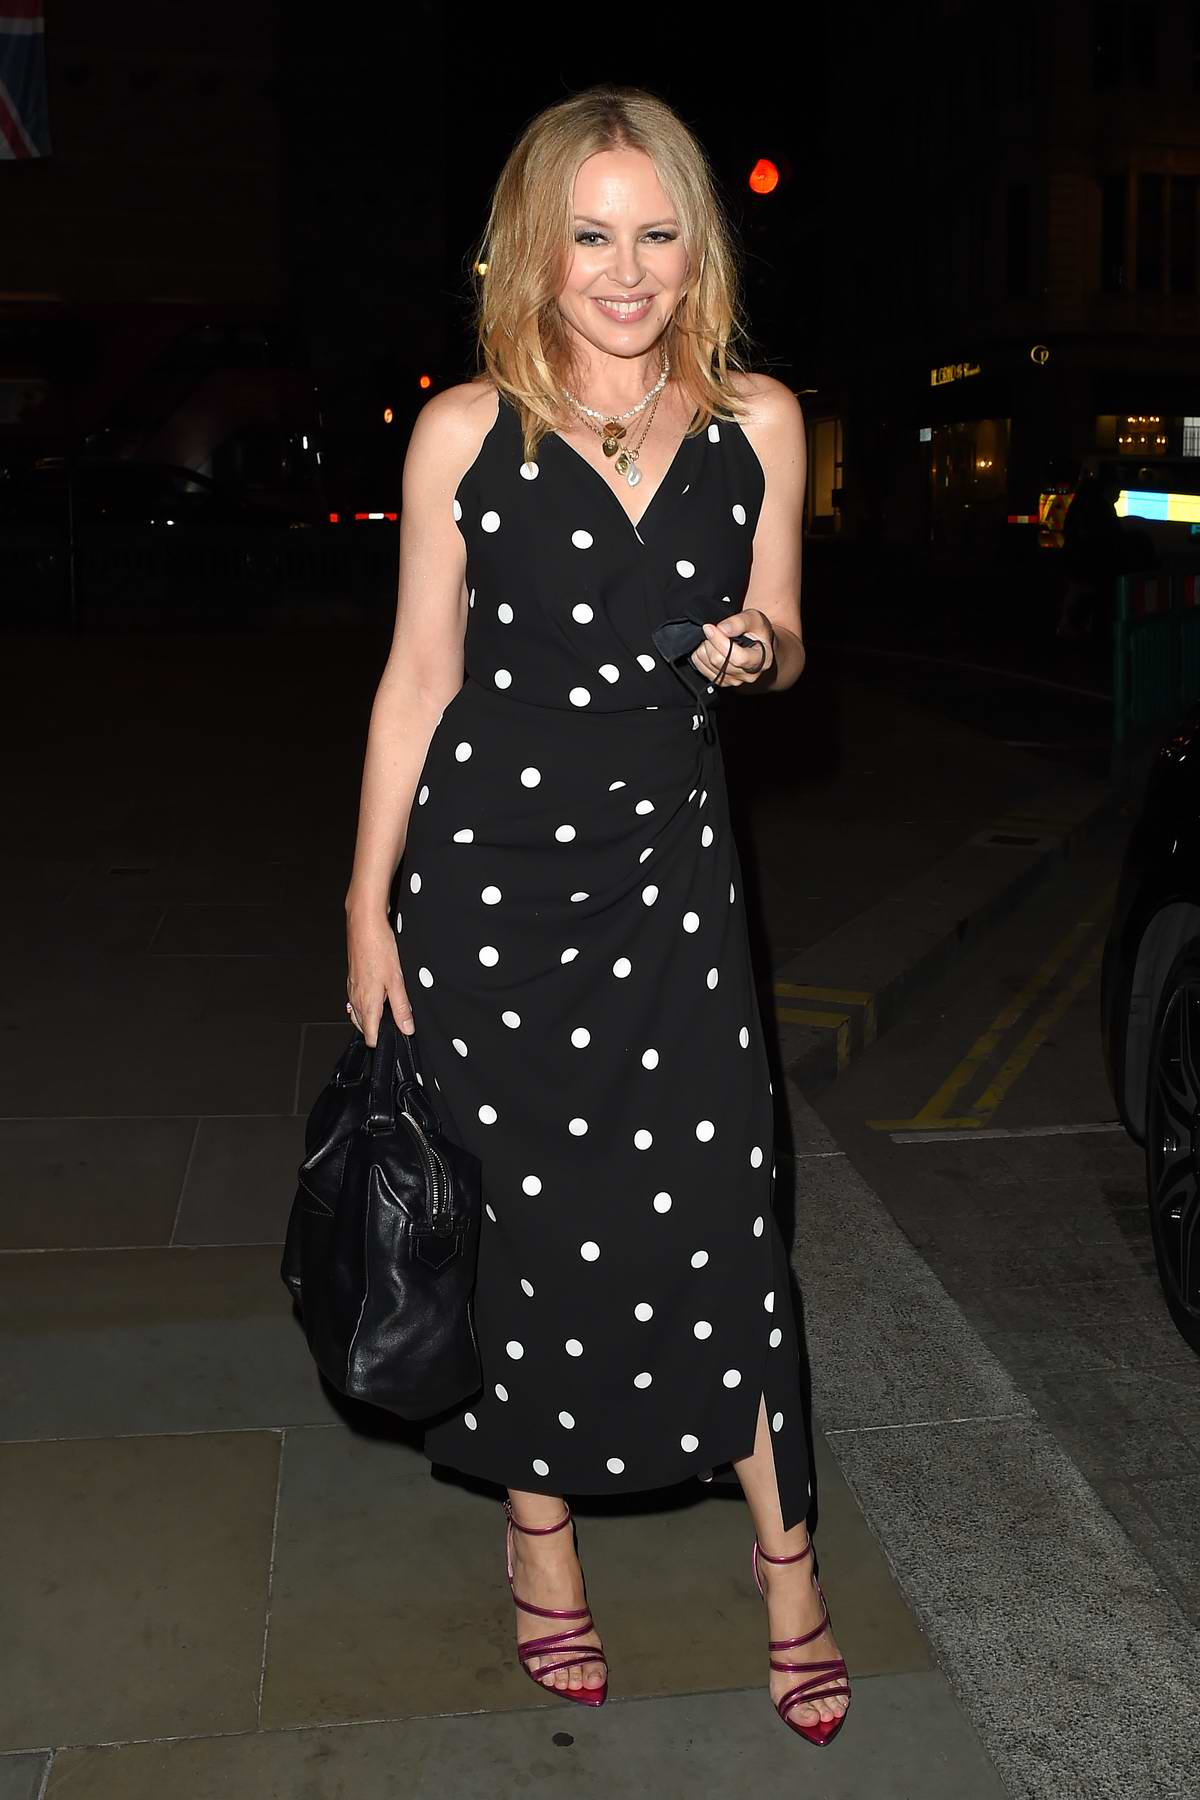 Kylie Minogue wears a polka dot dress as she enjoys a night out at The Ritz Hotel in London, UK